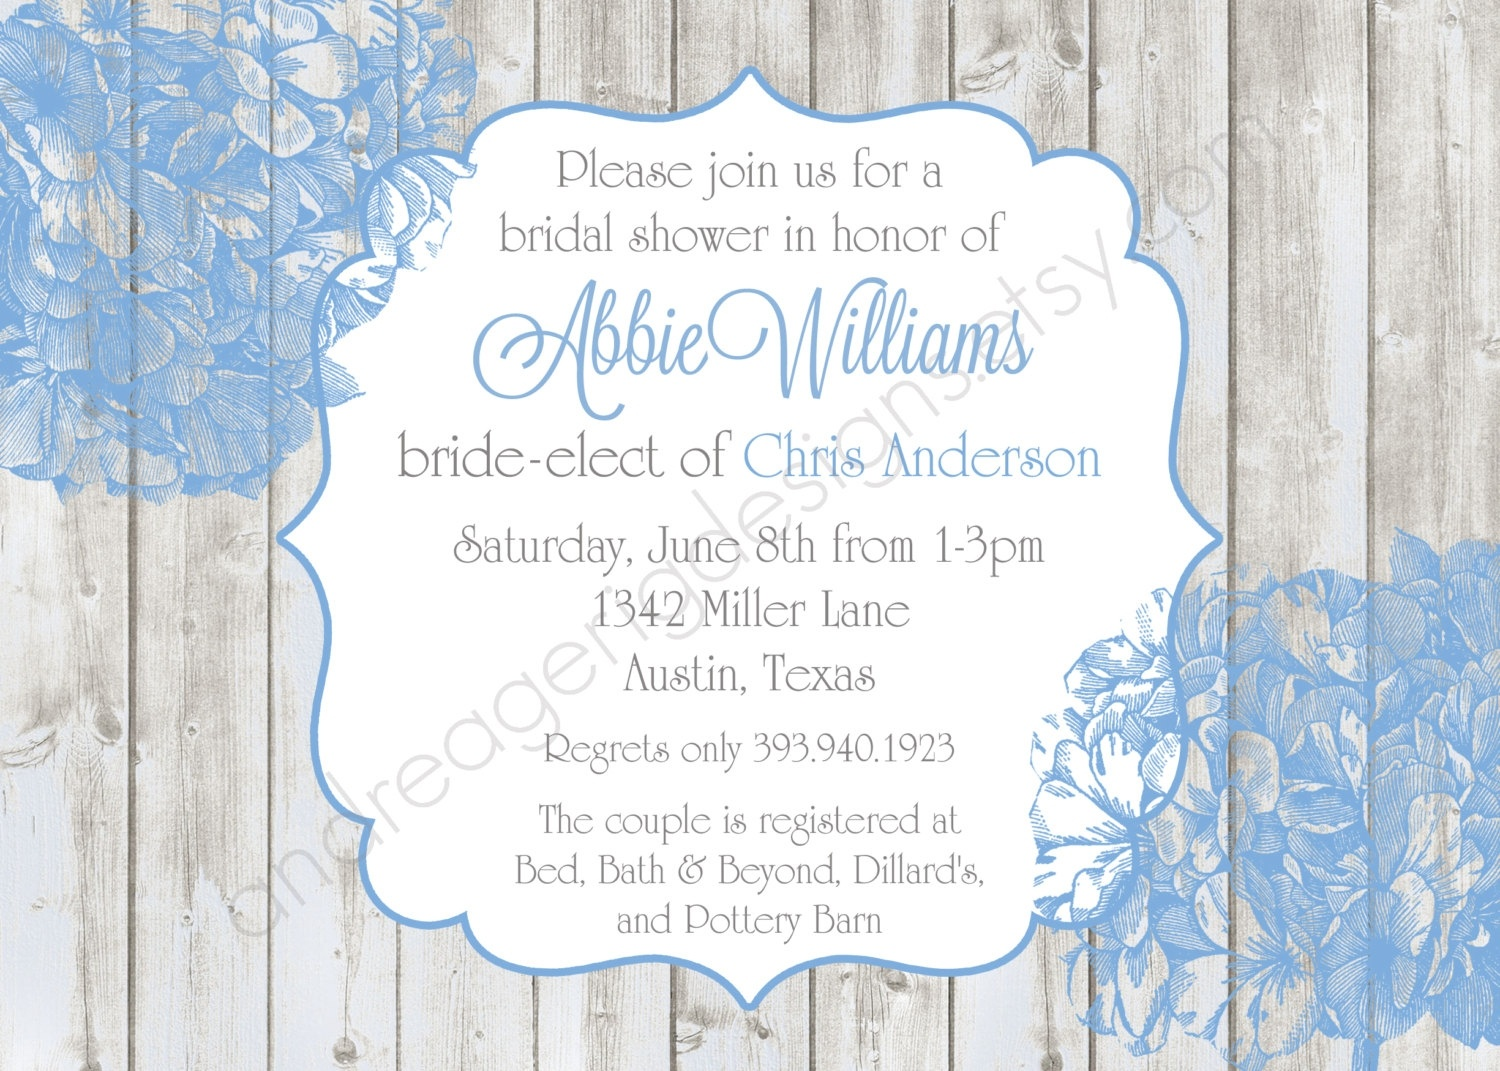 Wedding Shower Invitation Template Free Printable Bridal Shower - Free Printable Bridal Shower Invitations Templates